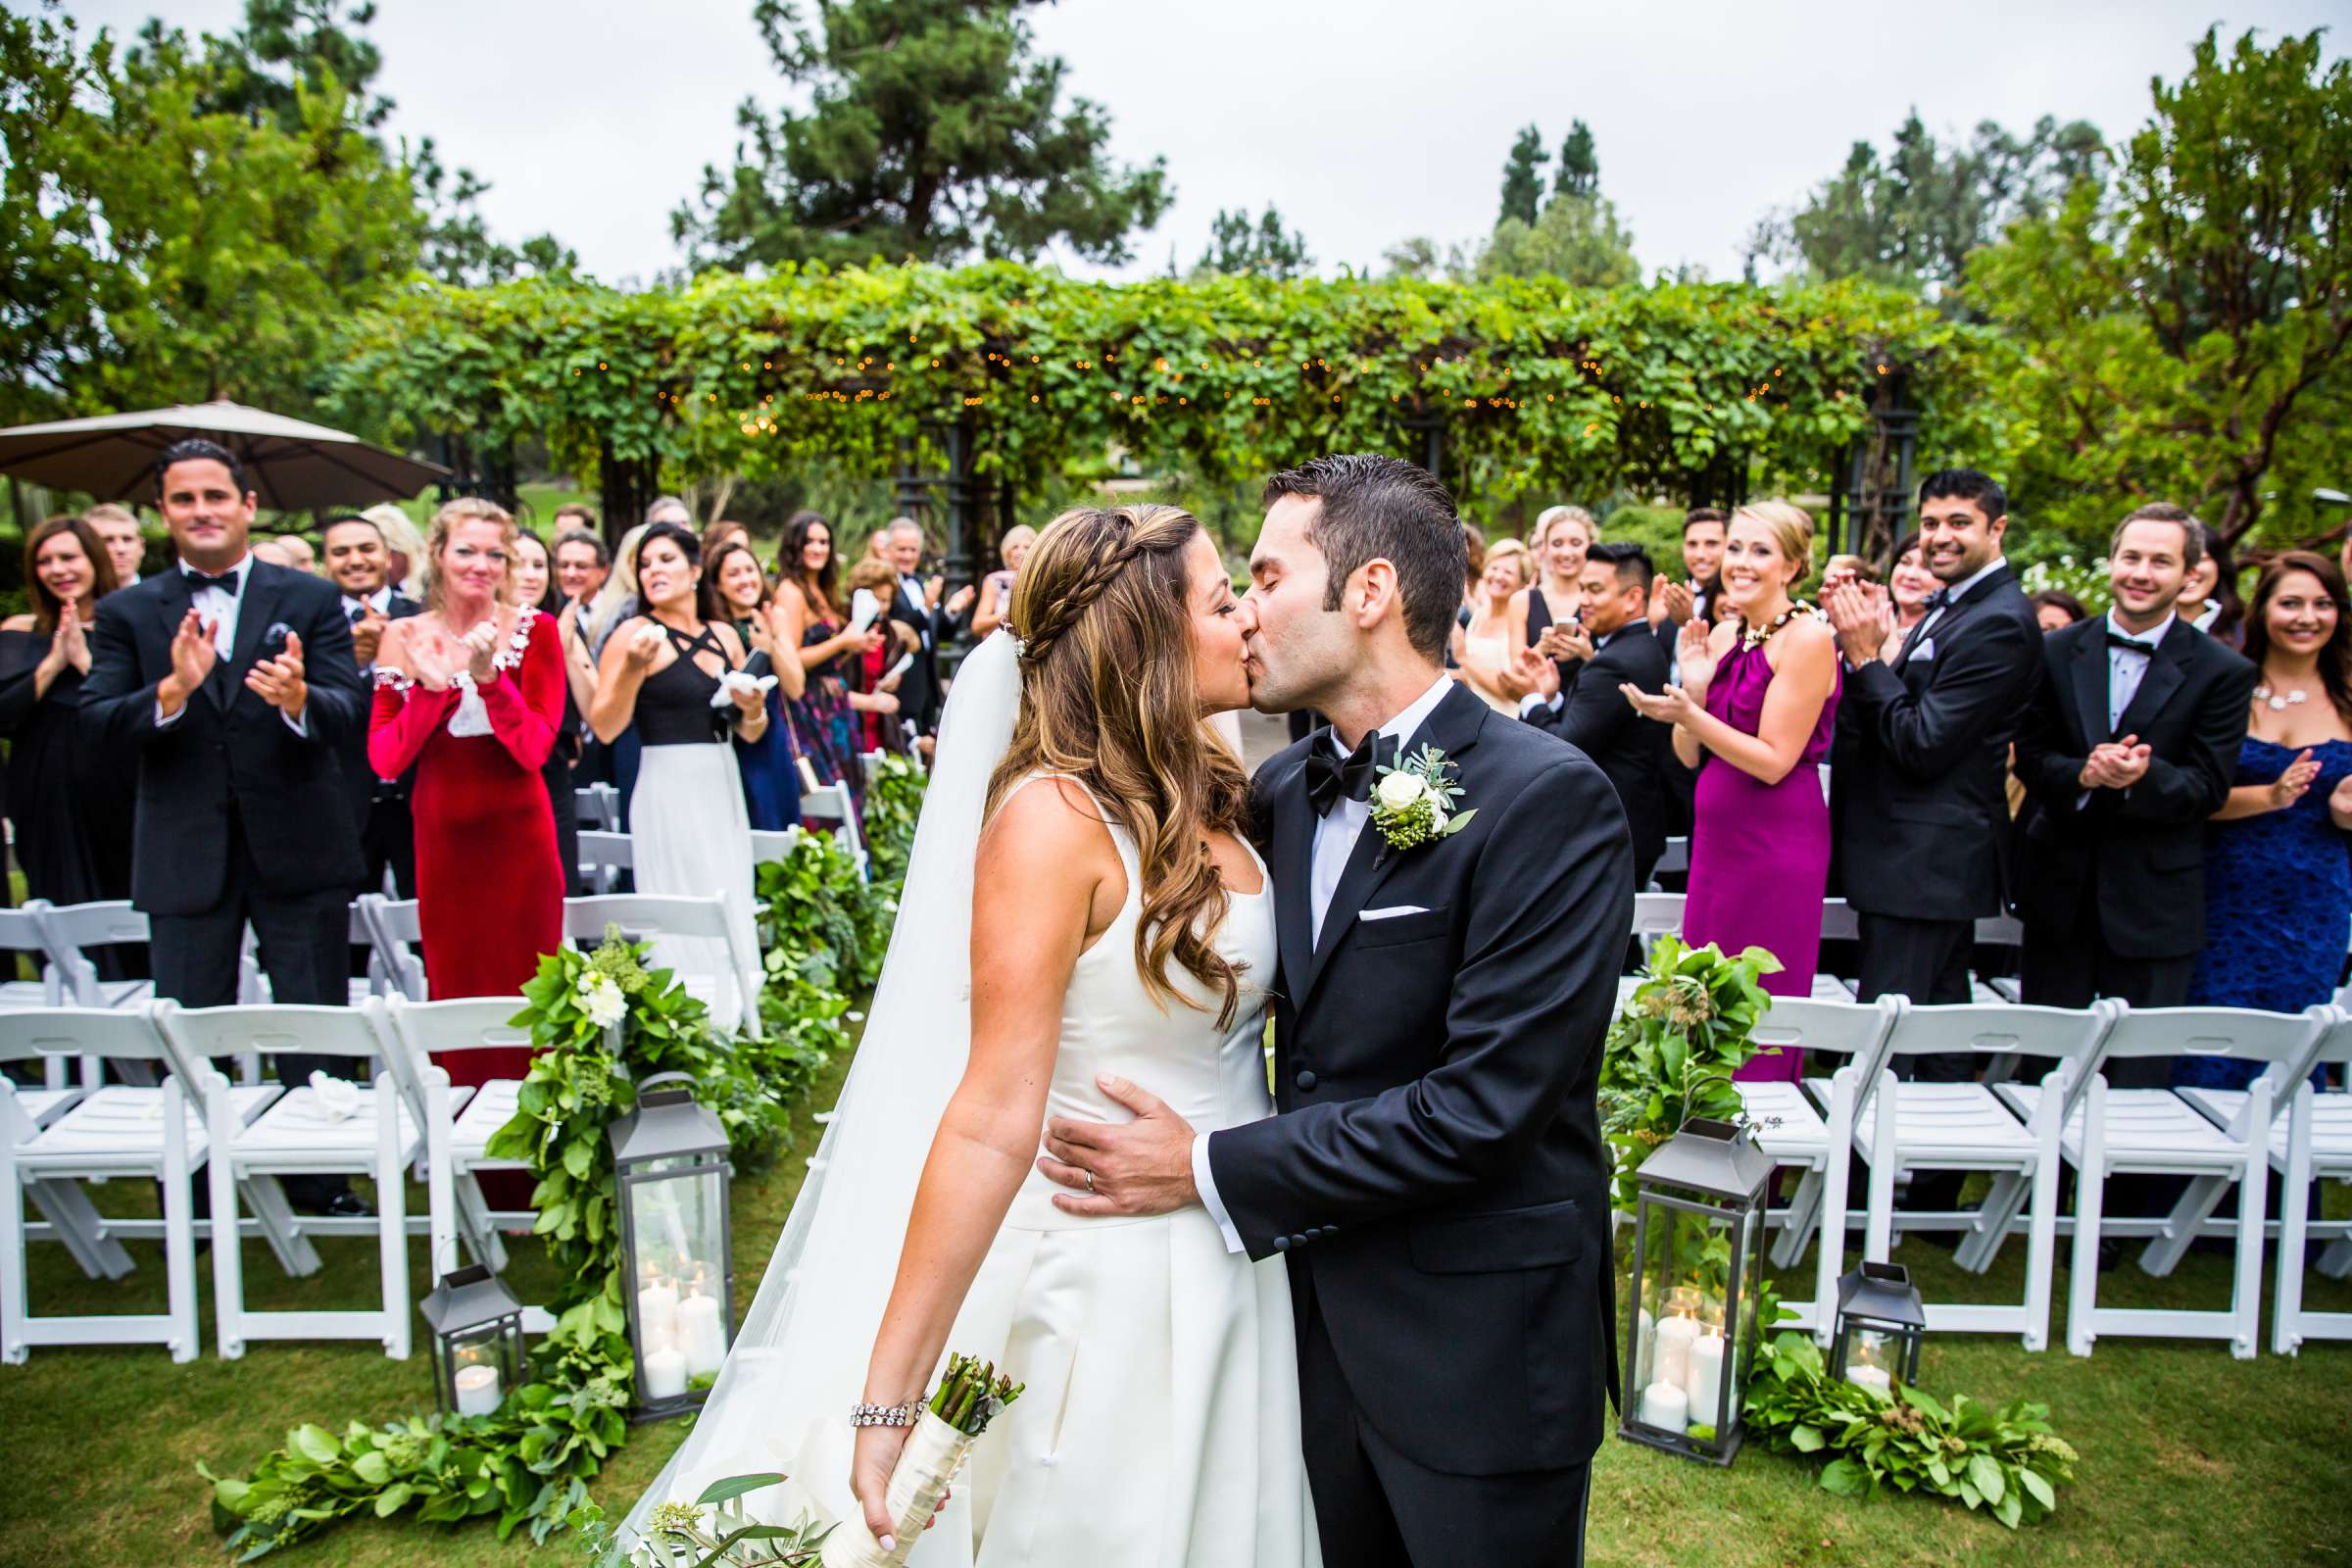 Rancho Bernardo Inn Wedding coordinated by Très Chic Events, Stefania and Nicholas Wedding Photo #51 by True Photography